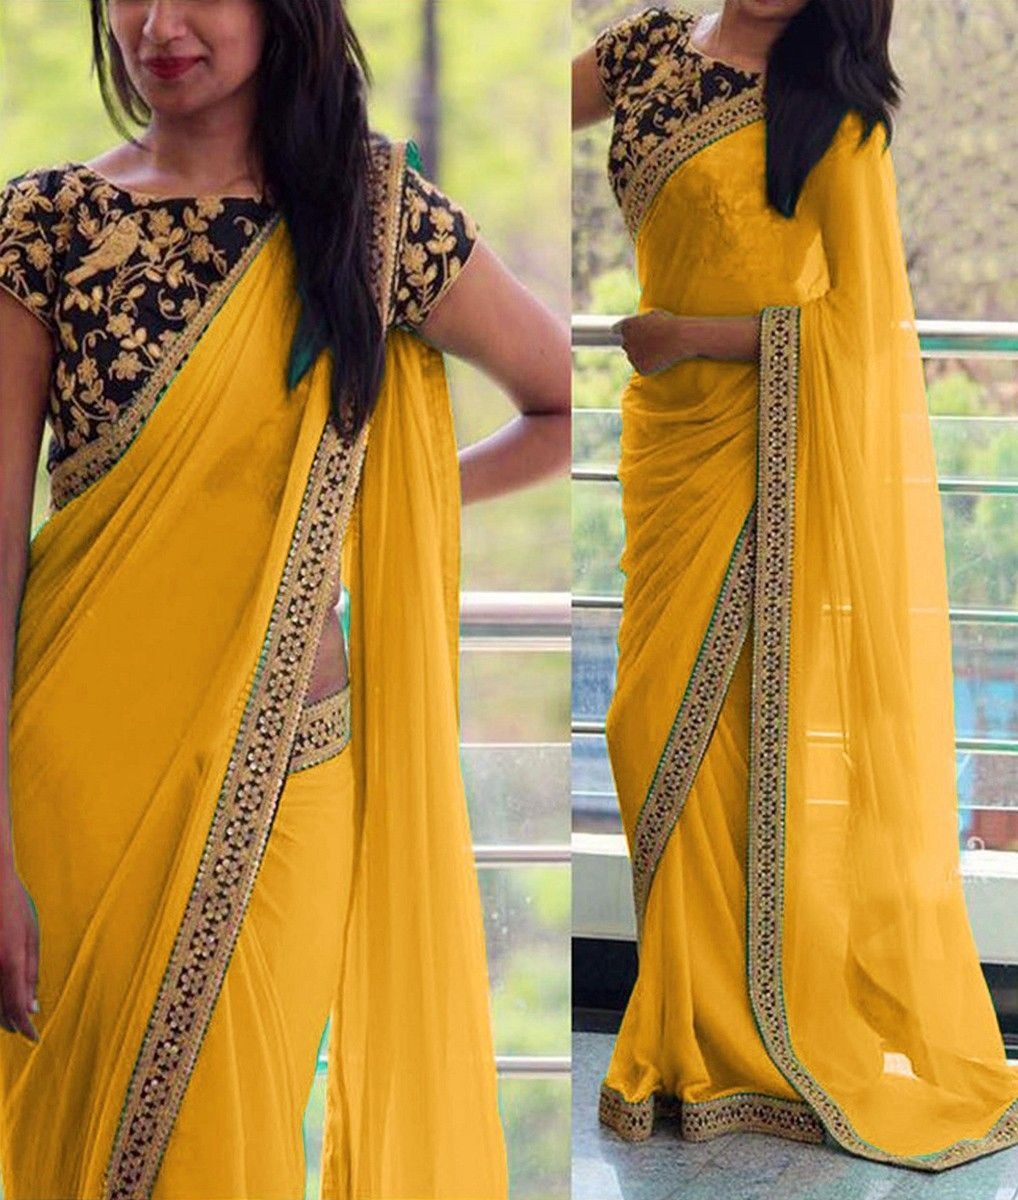 85e34453f03f2 Georgette+Border+Work+Yellow+Plain+Saree+-+808C at Rs 1499